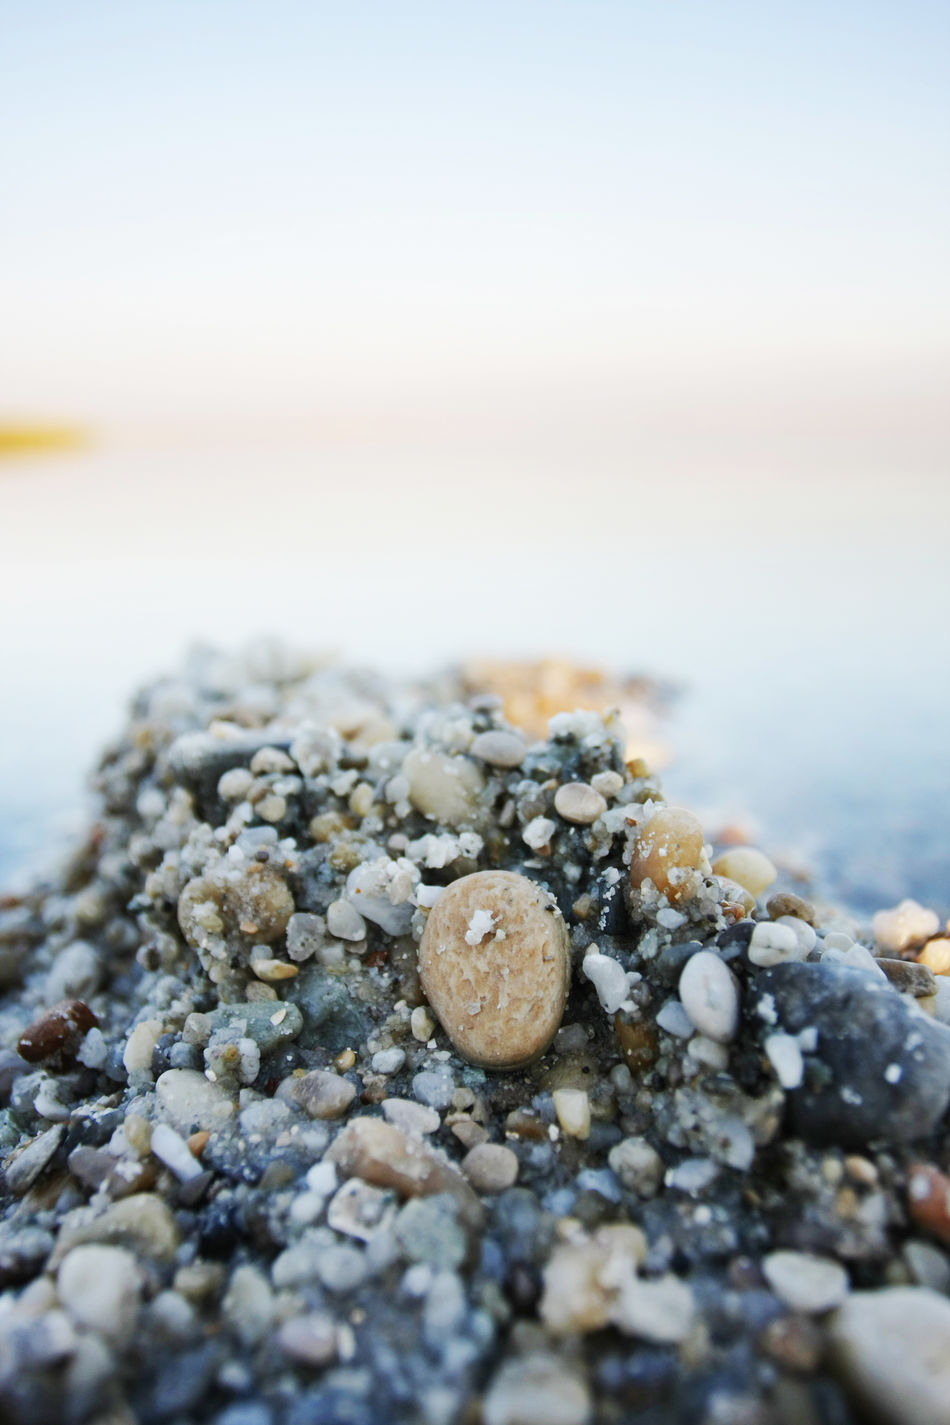 Abundance B Beauty In Nature Close-up Day Nature No People Outdoors Pebble Rock Rock - Object Scenics Selective Focus Selfie Shell Shore Sky Stone Stone - Object Surface Level Tranquil Scene Tranquility